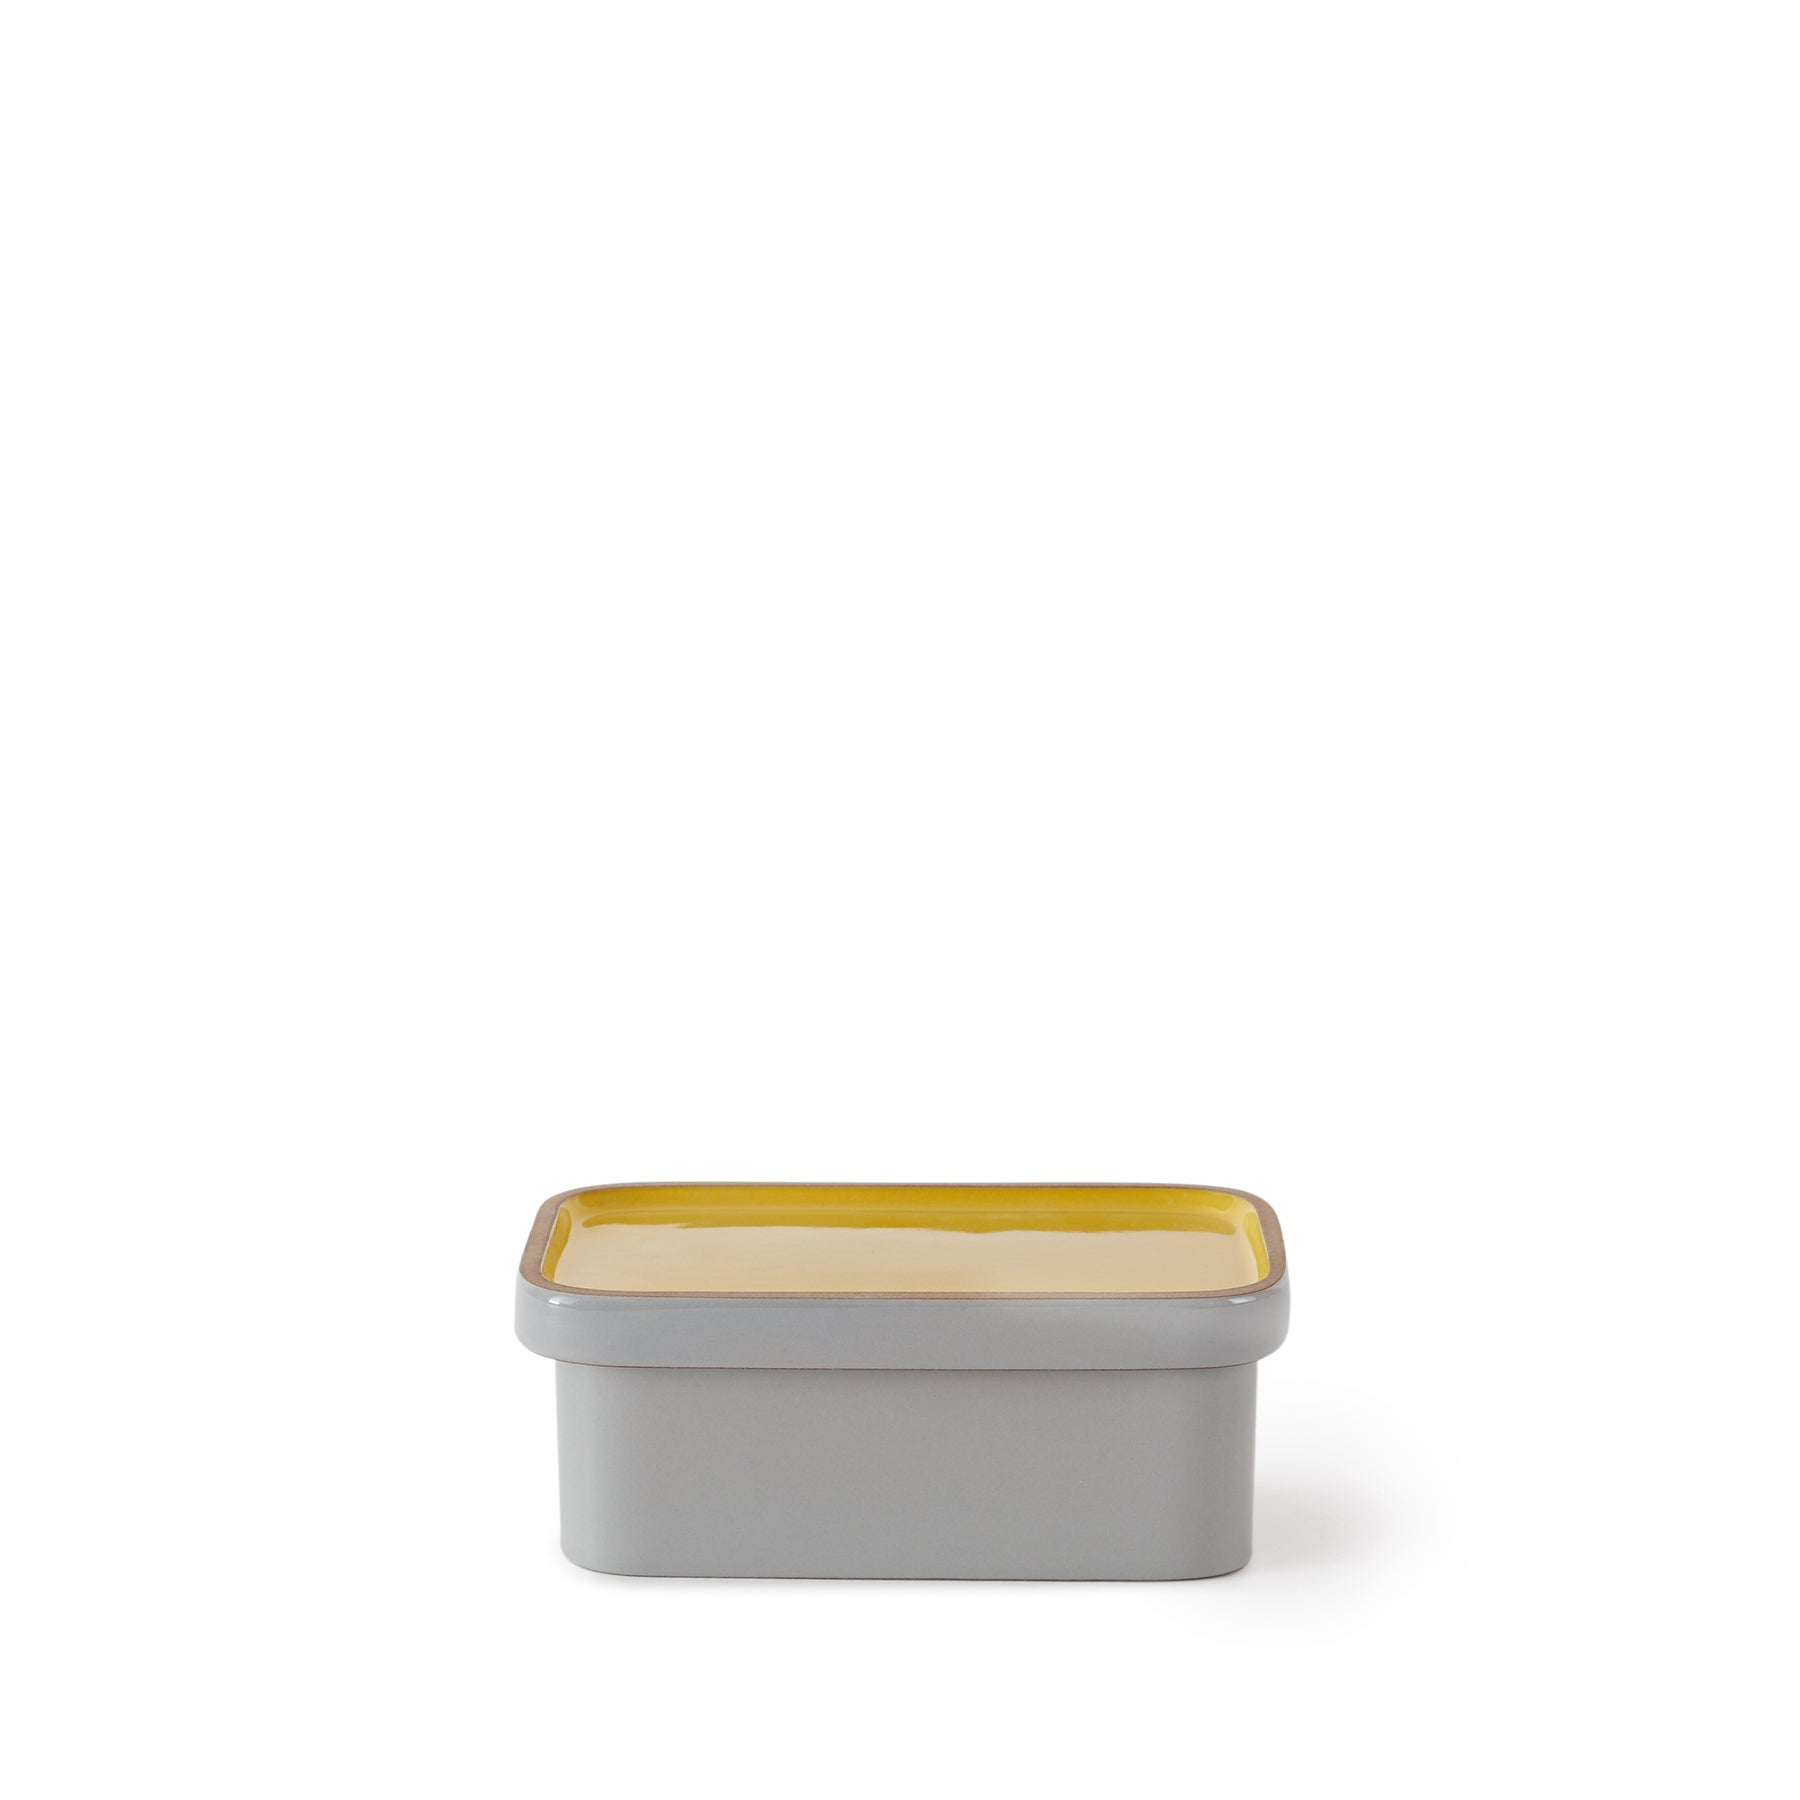 Butter Dish in Yuzu and Light Grey Whale Zoom Image 1